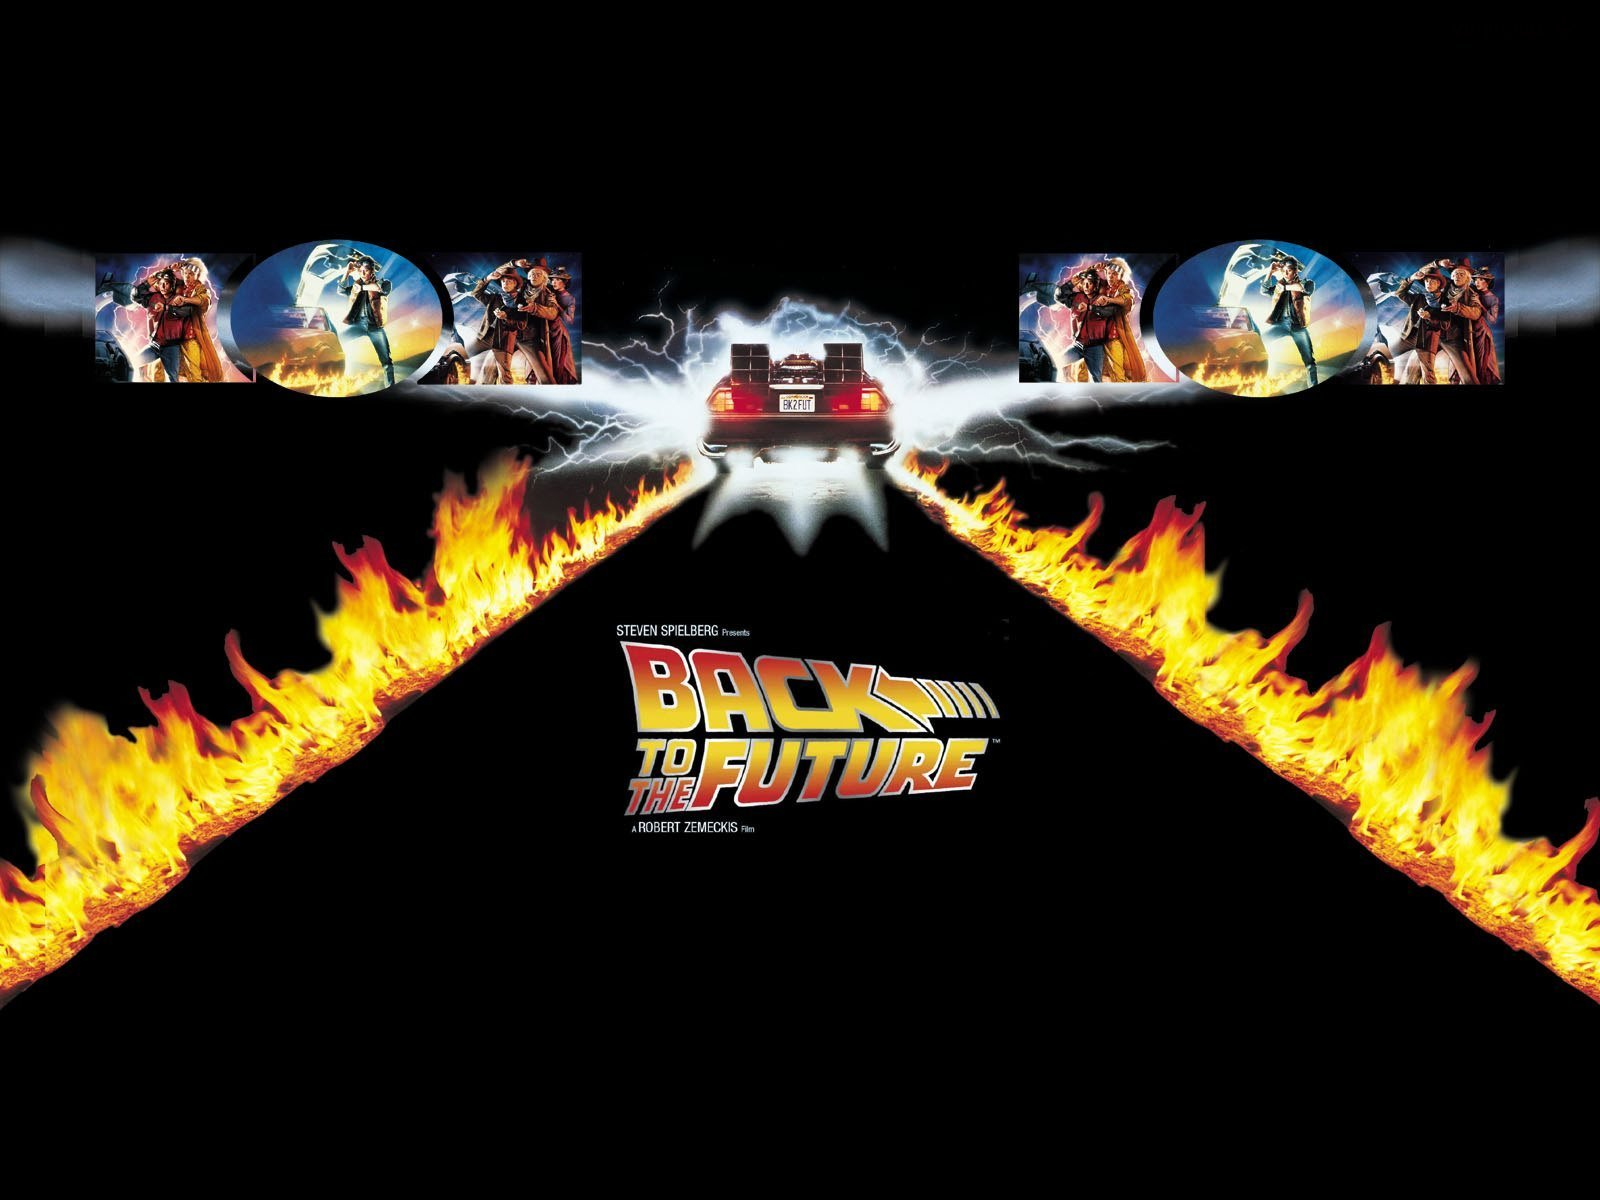 Back To The Future Back To The Future Wallpaper 13786661 Fanpop